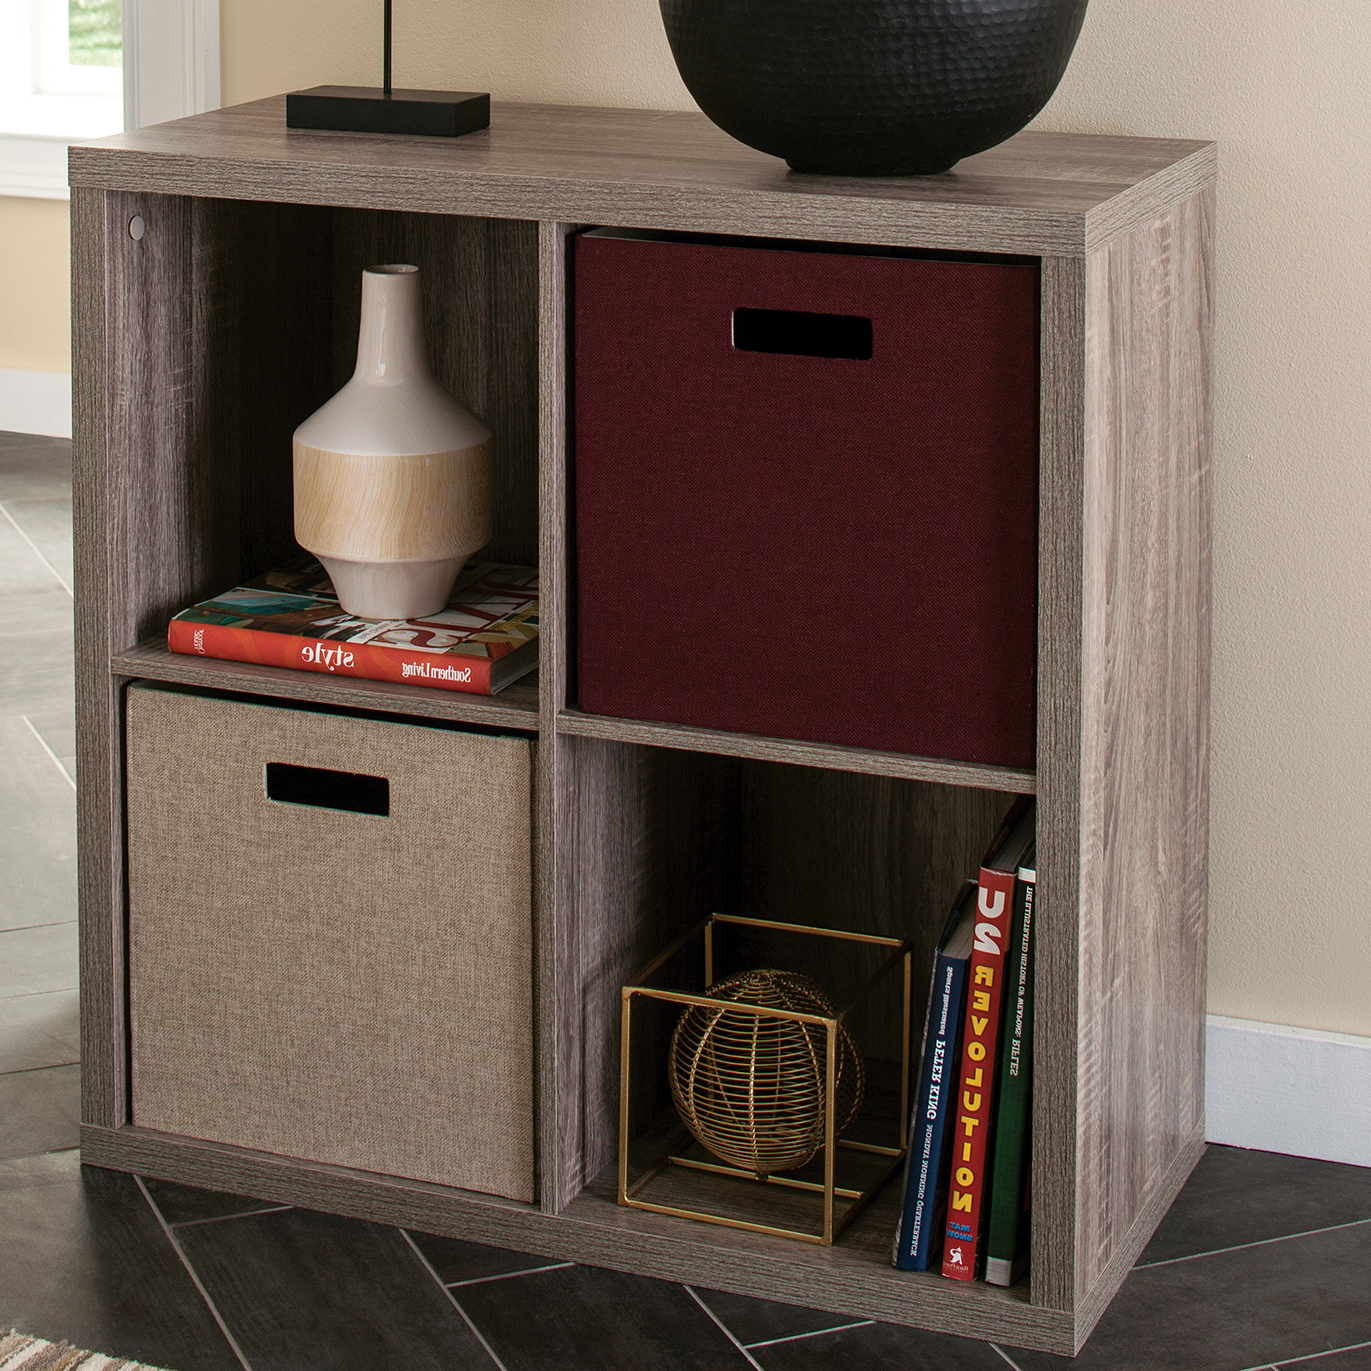 Widely Used Decorative Storage Cube Bookcases In Decorative Storage Cube Bookcase (View 13 of 20)